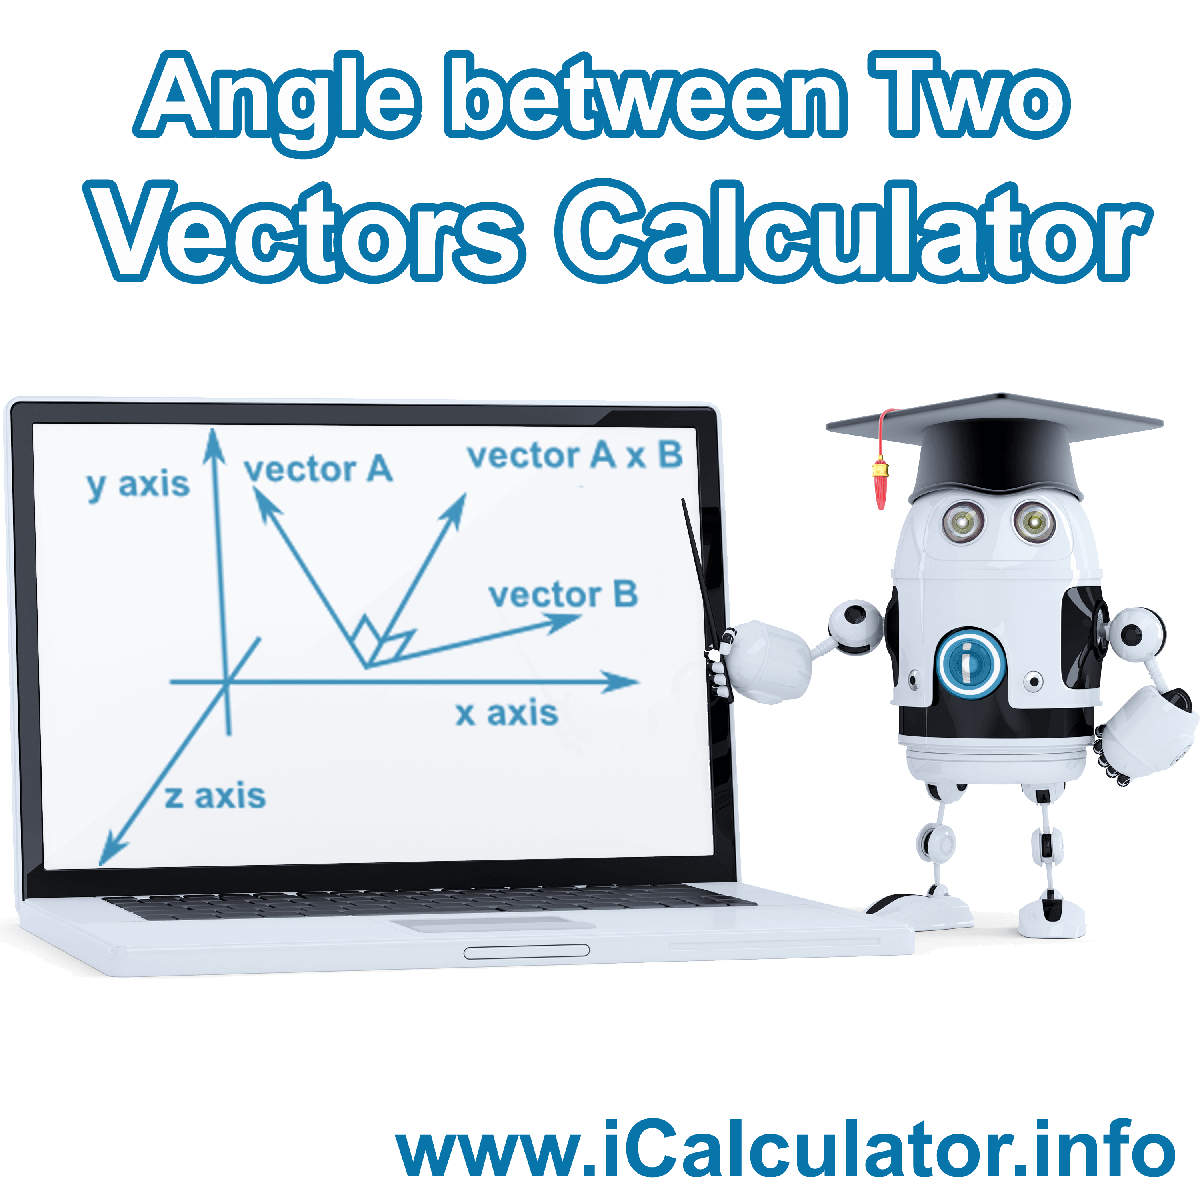 Angle Between Two Vectors Calculator. This image shows the Angle Between Two Vectors with associated calculations used by the Angle Between Two Vectors Calculator